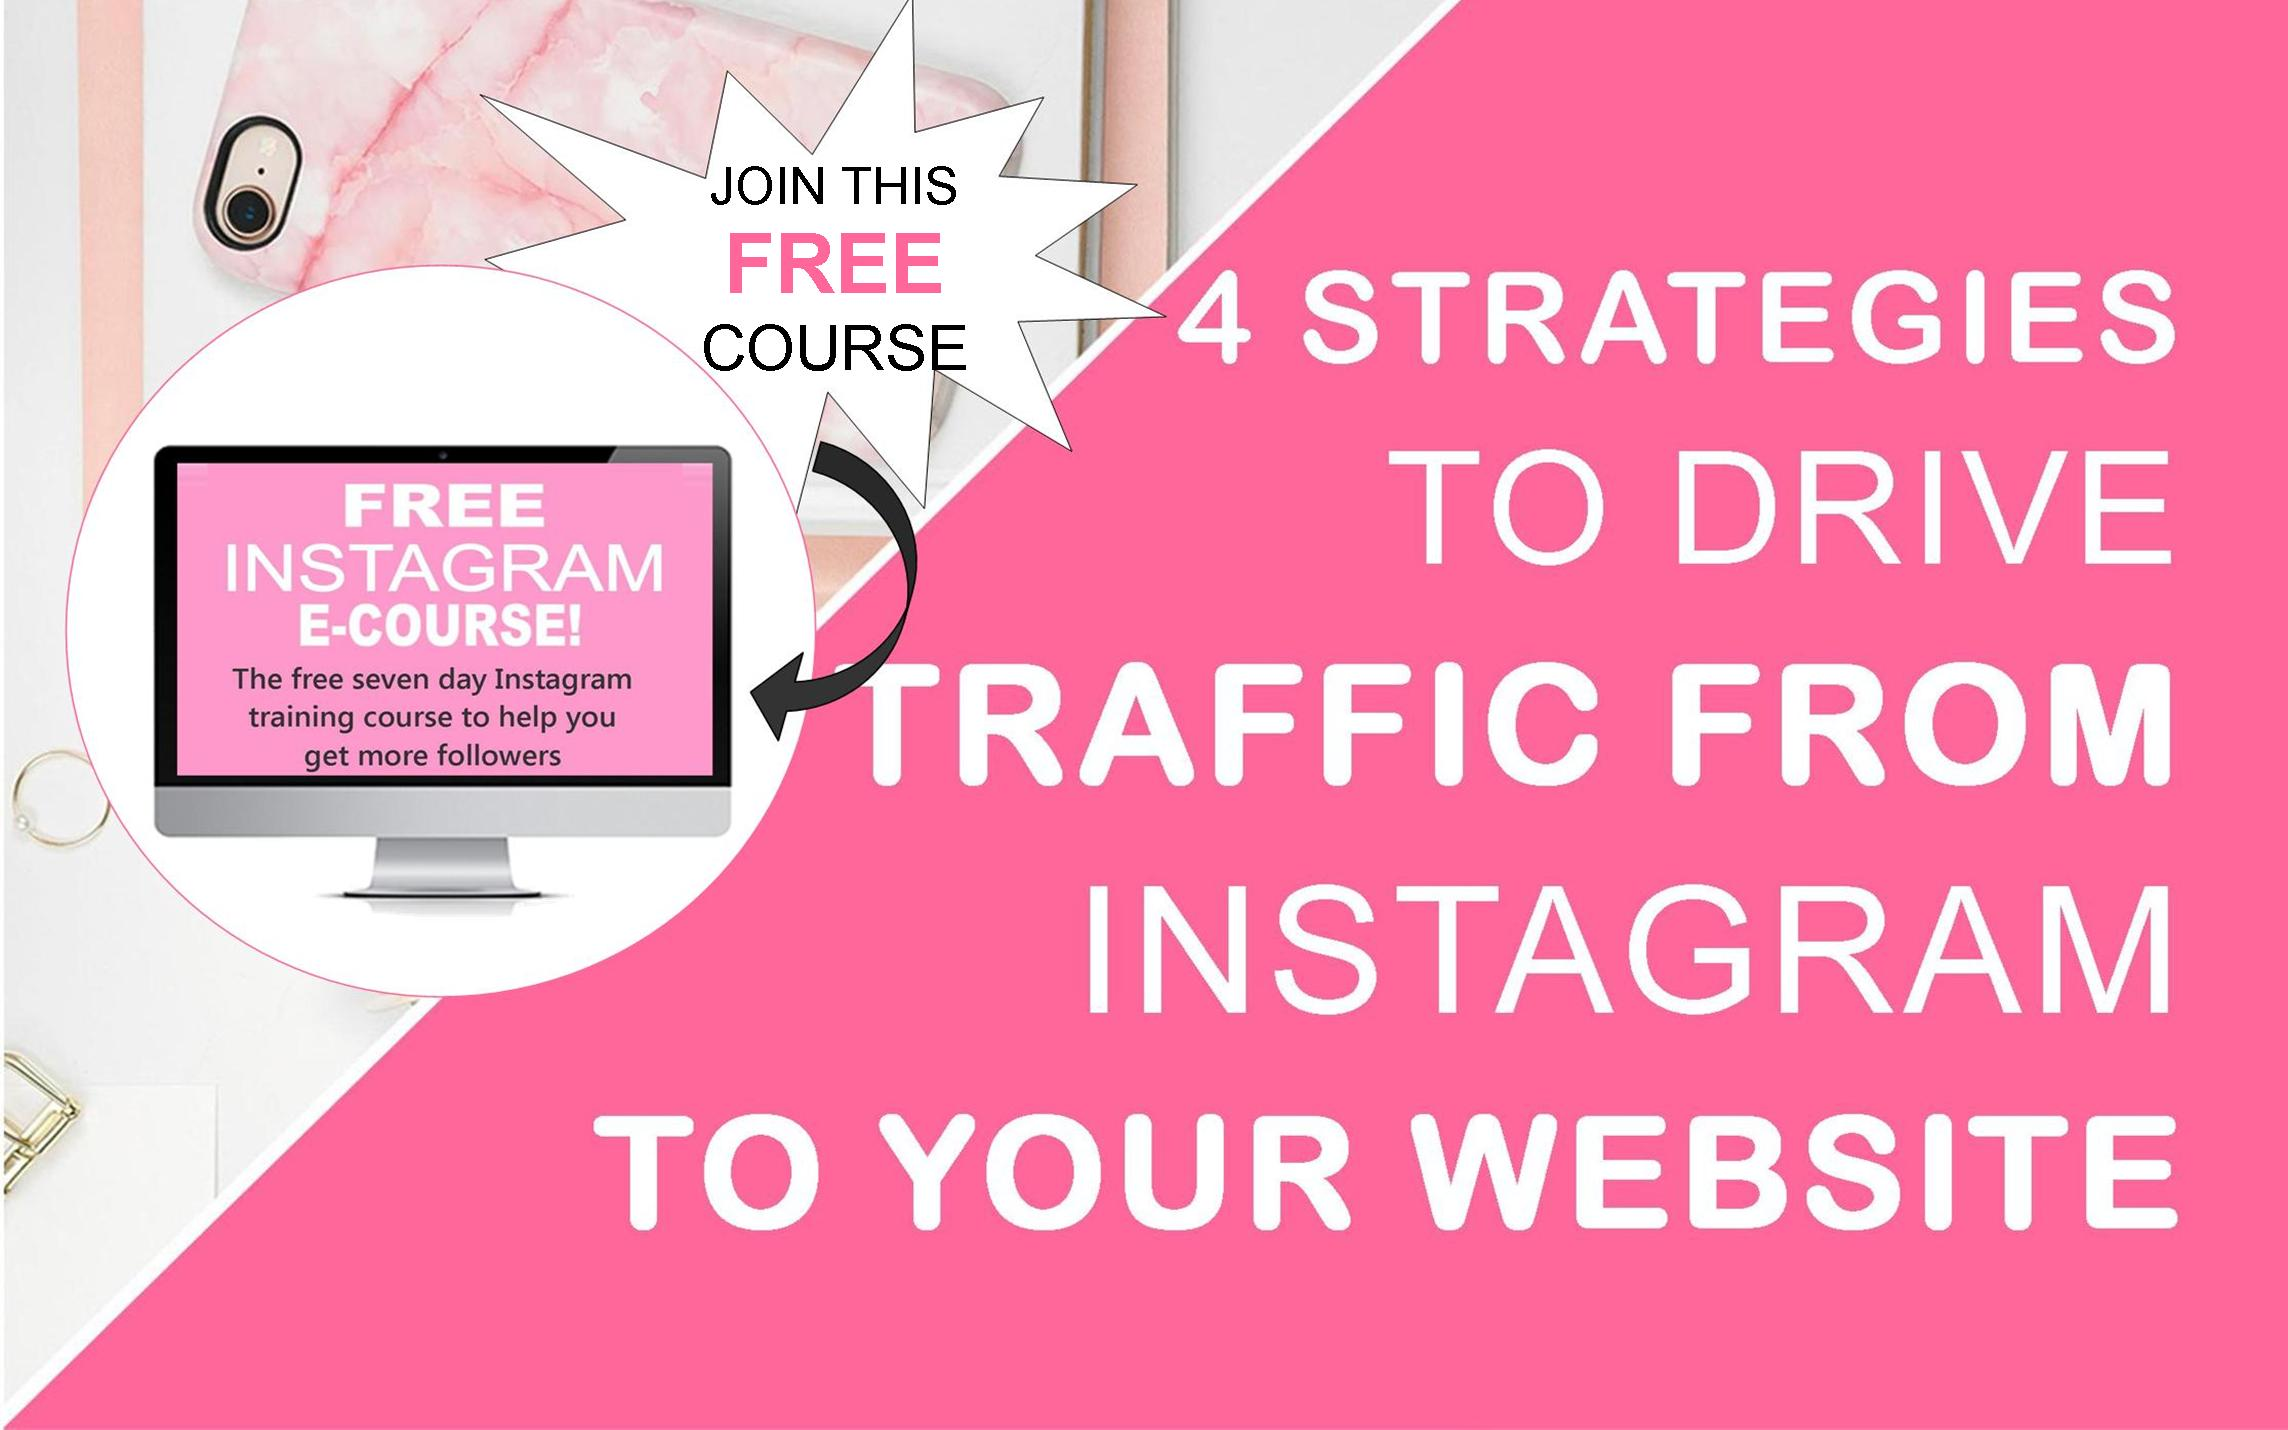 4 Strategies to Drive Traffic from Instagram to Your Website